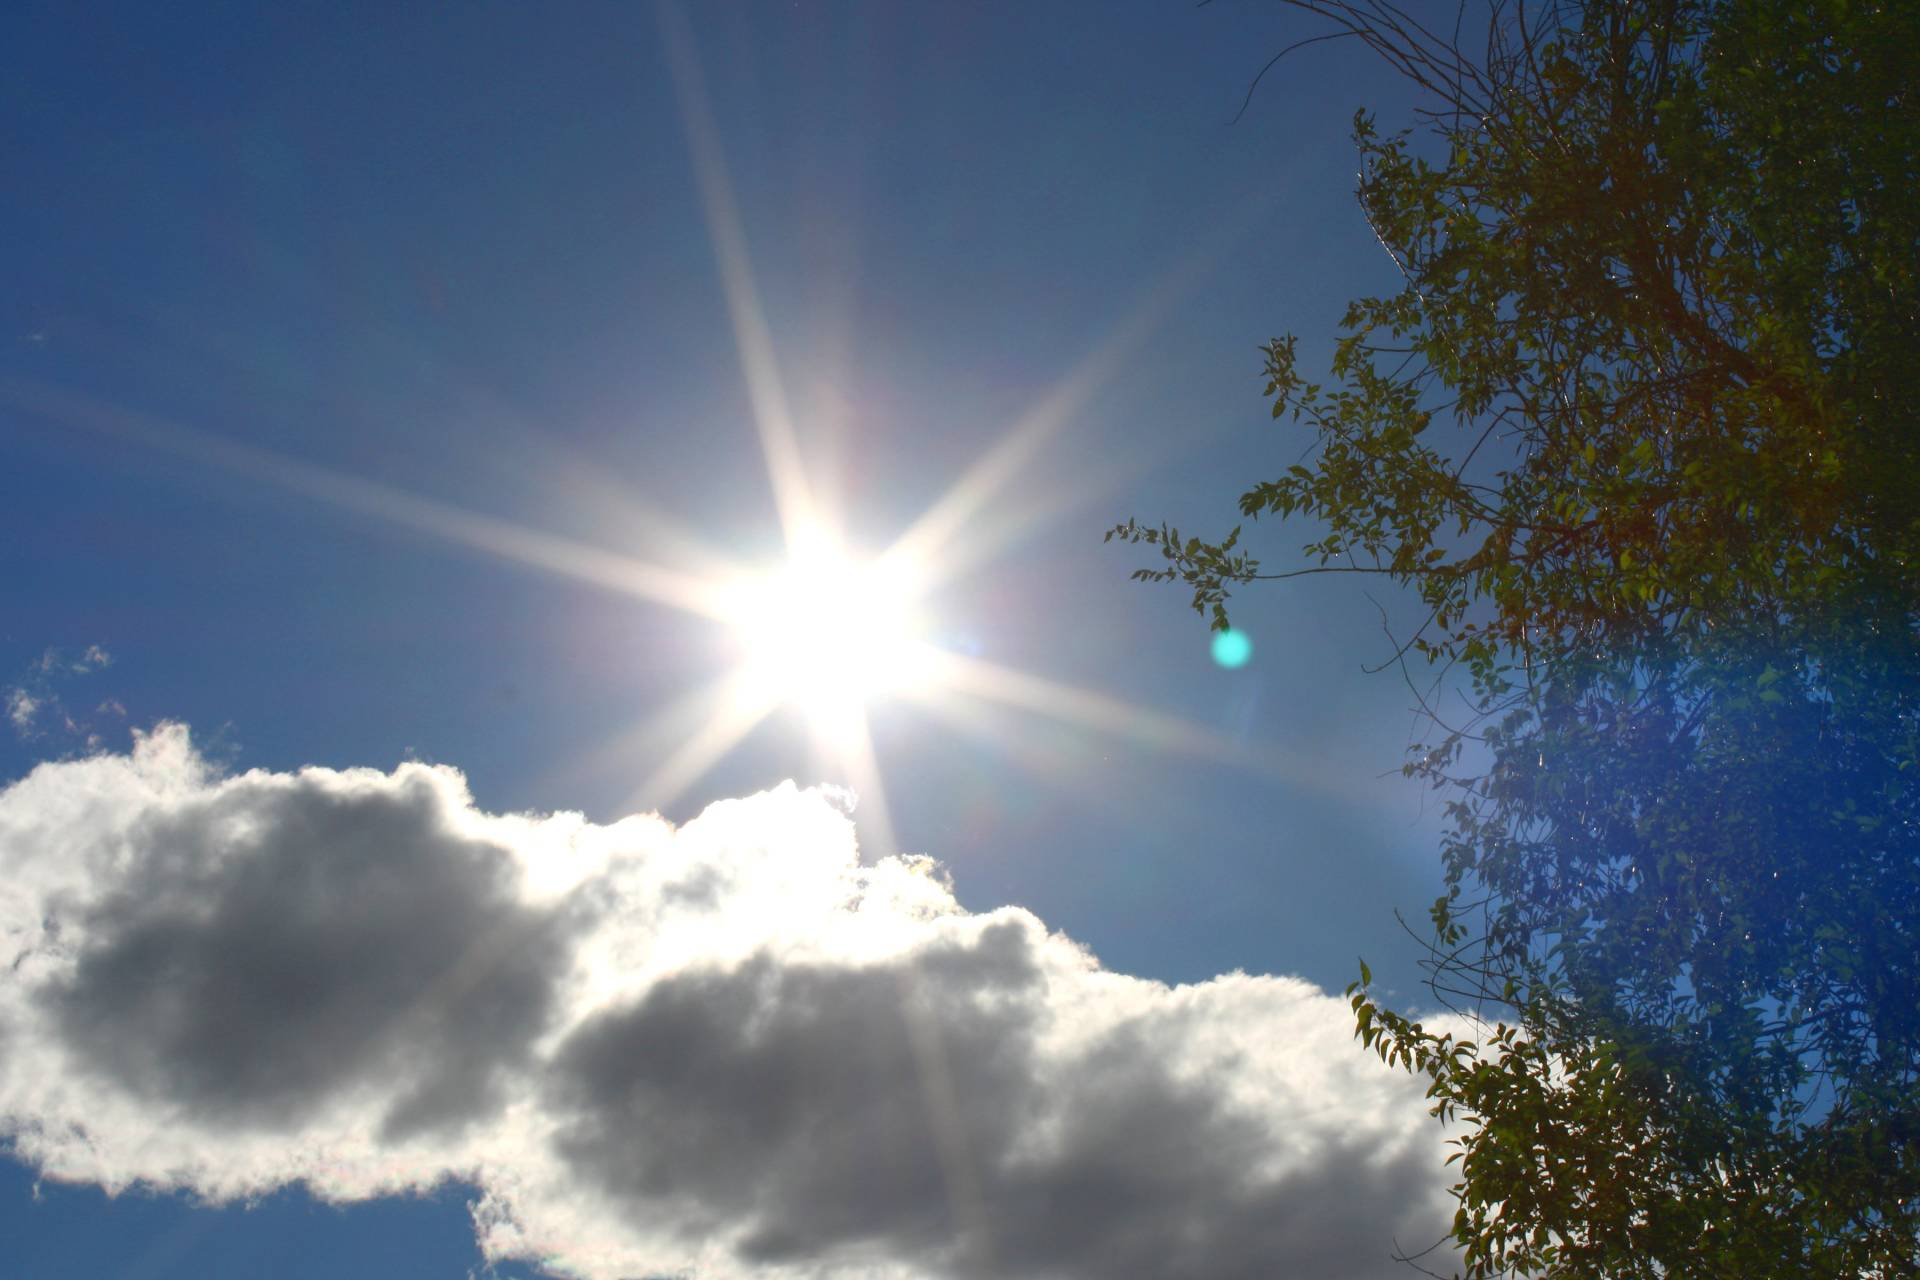 sun-in-blue-sky-with-cloud-and-tree